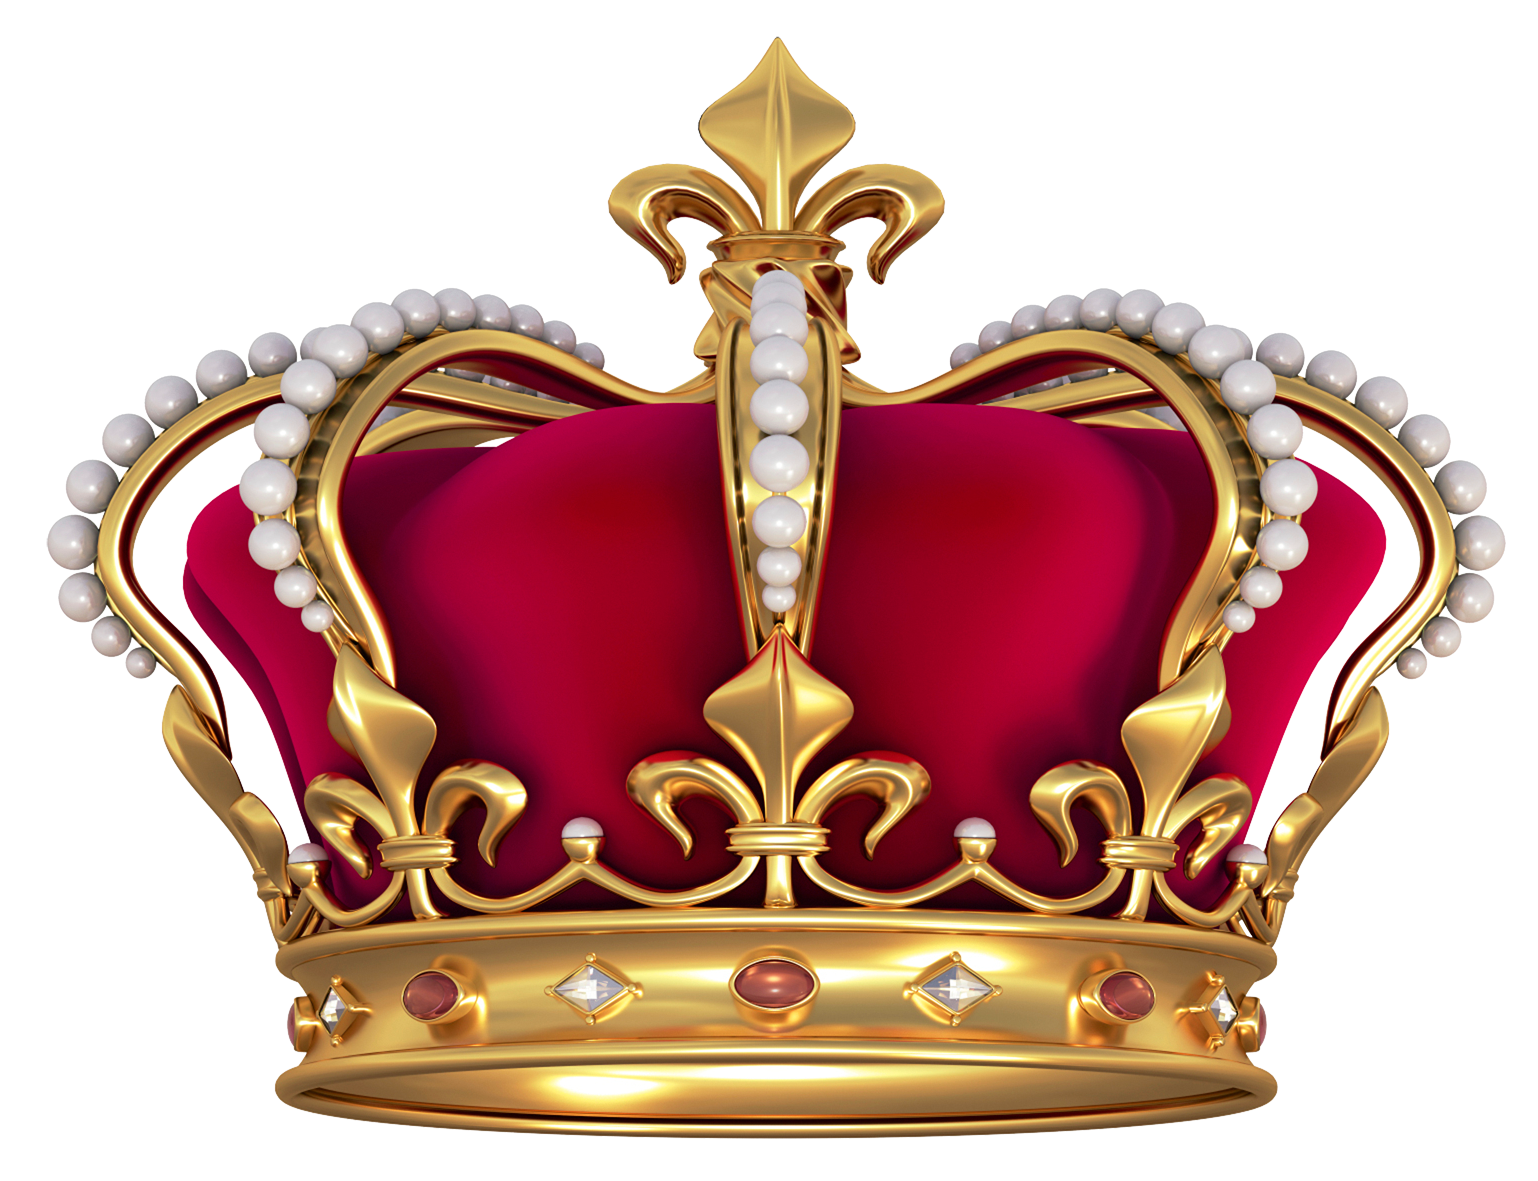 Golden crown clipart shareware